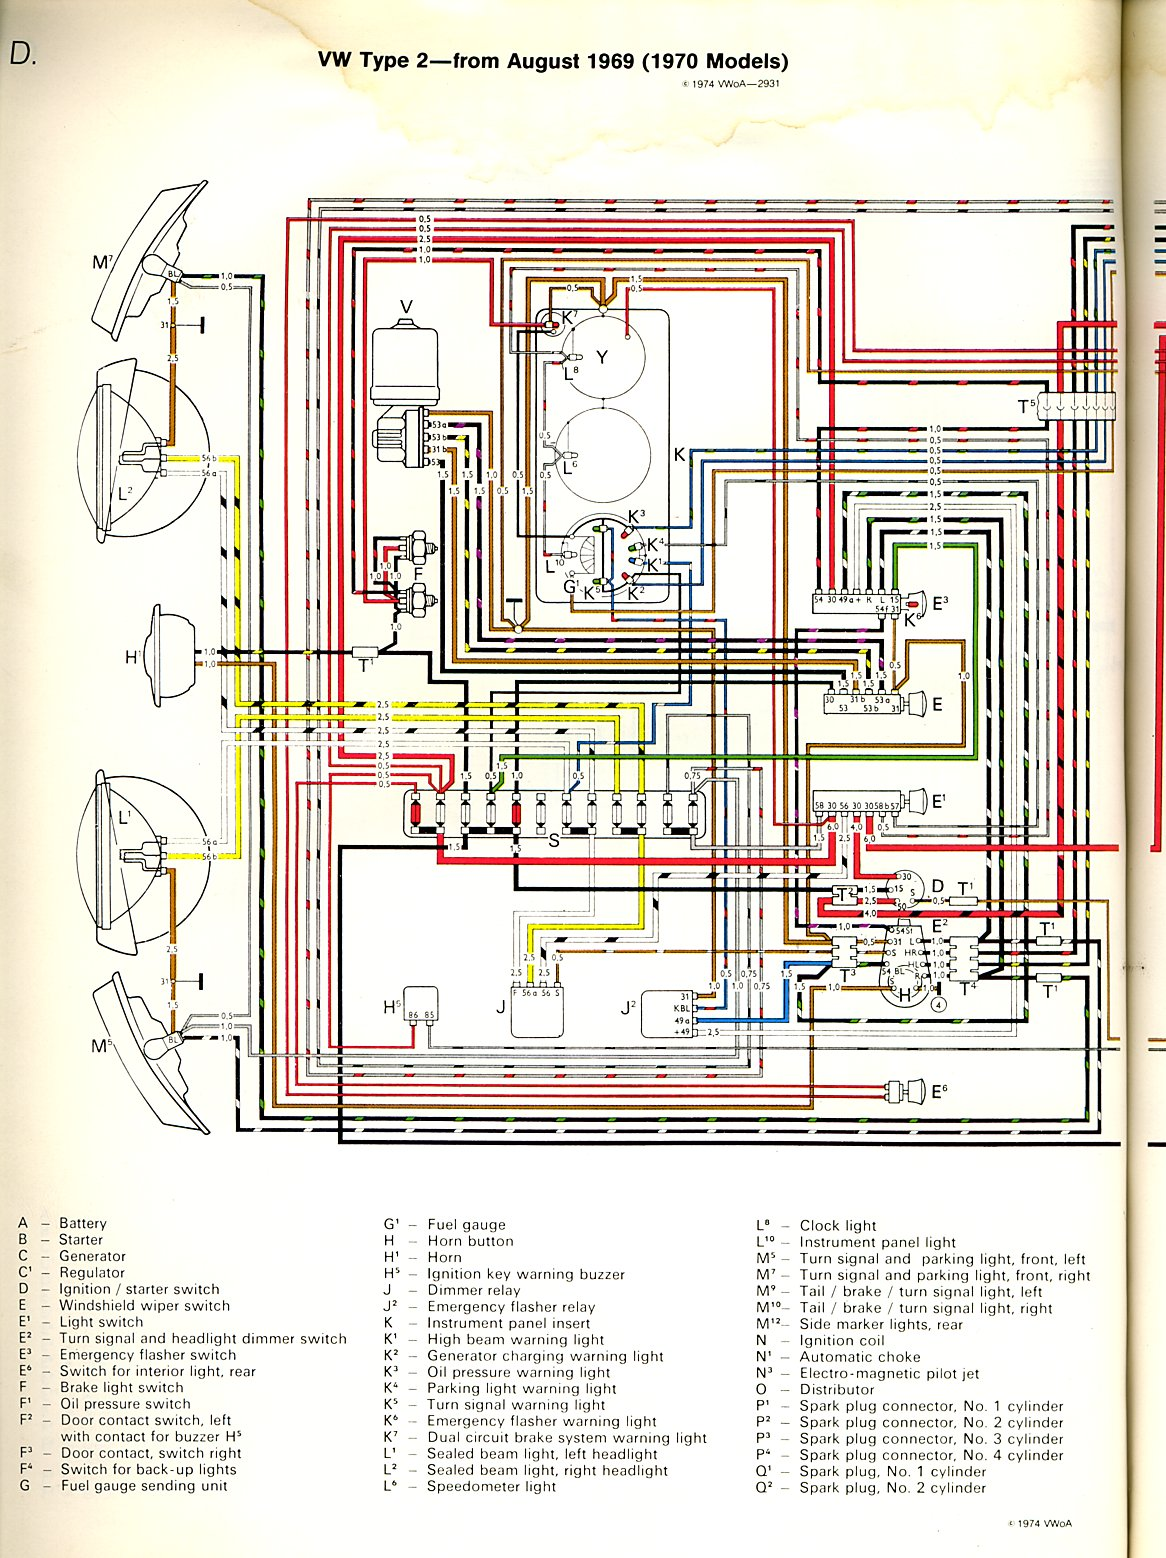 baybus_70a vw alternator wiring diagram empi vw alternator wiring diagram Volkswagen Type 2 Wiring Harness at mifinder.co